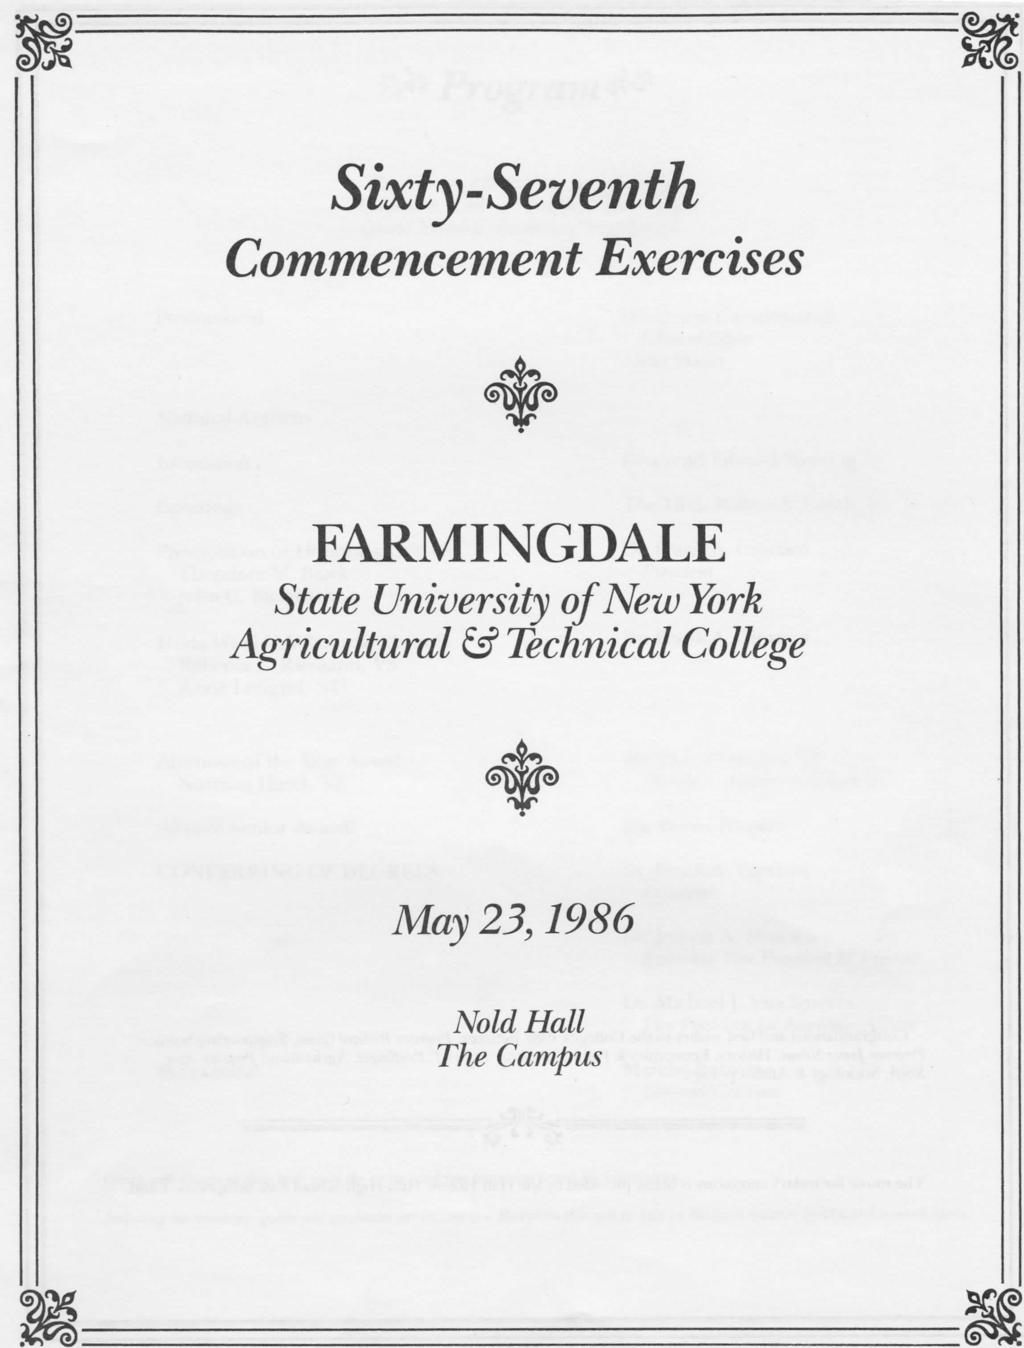 Sixty-Seventh Commencement Exercises FARMINGDALE State University of New